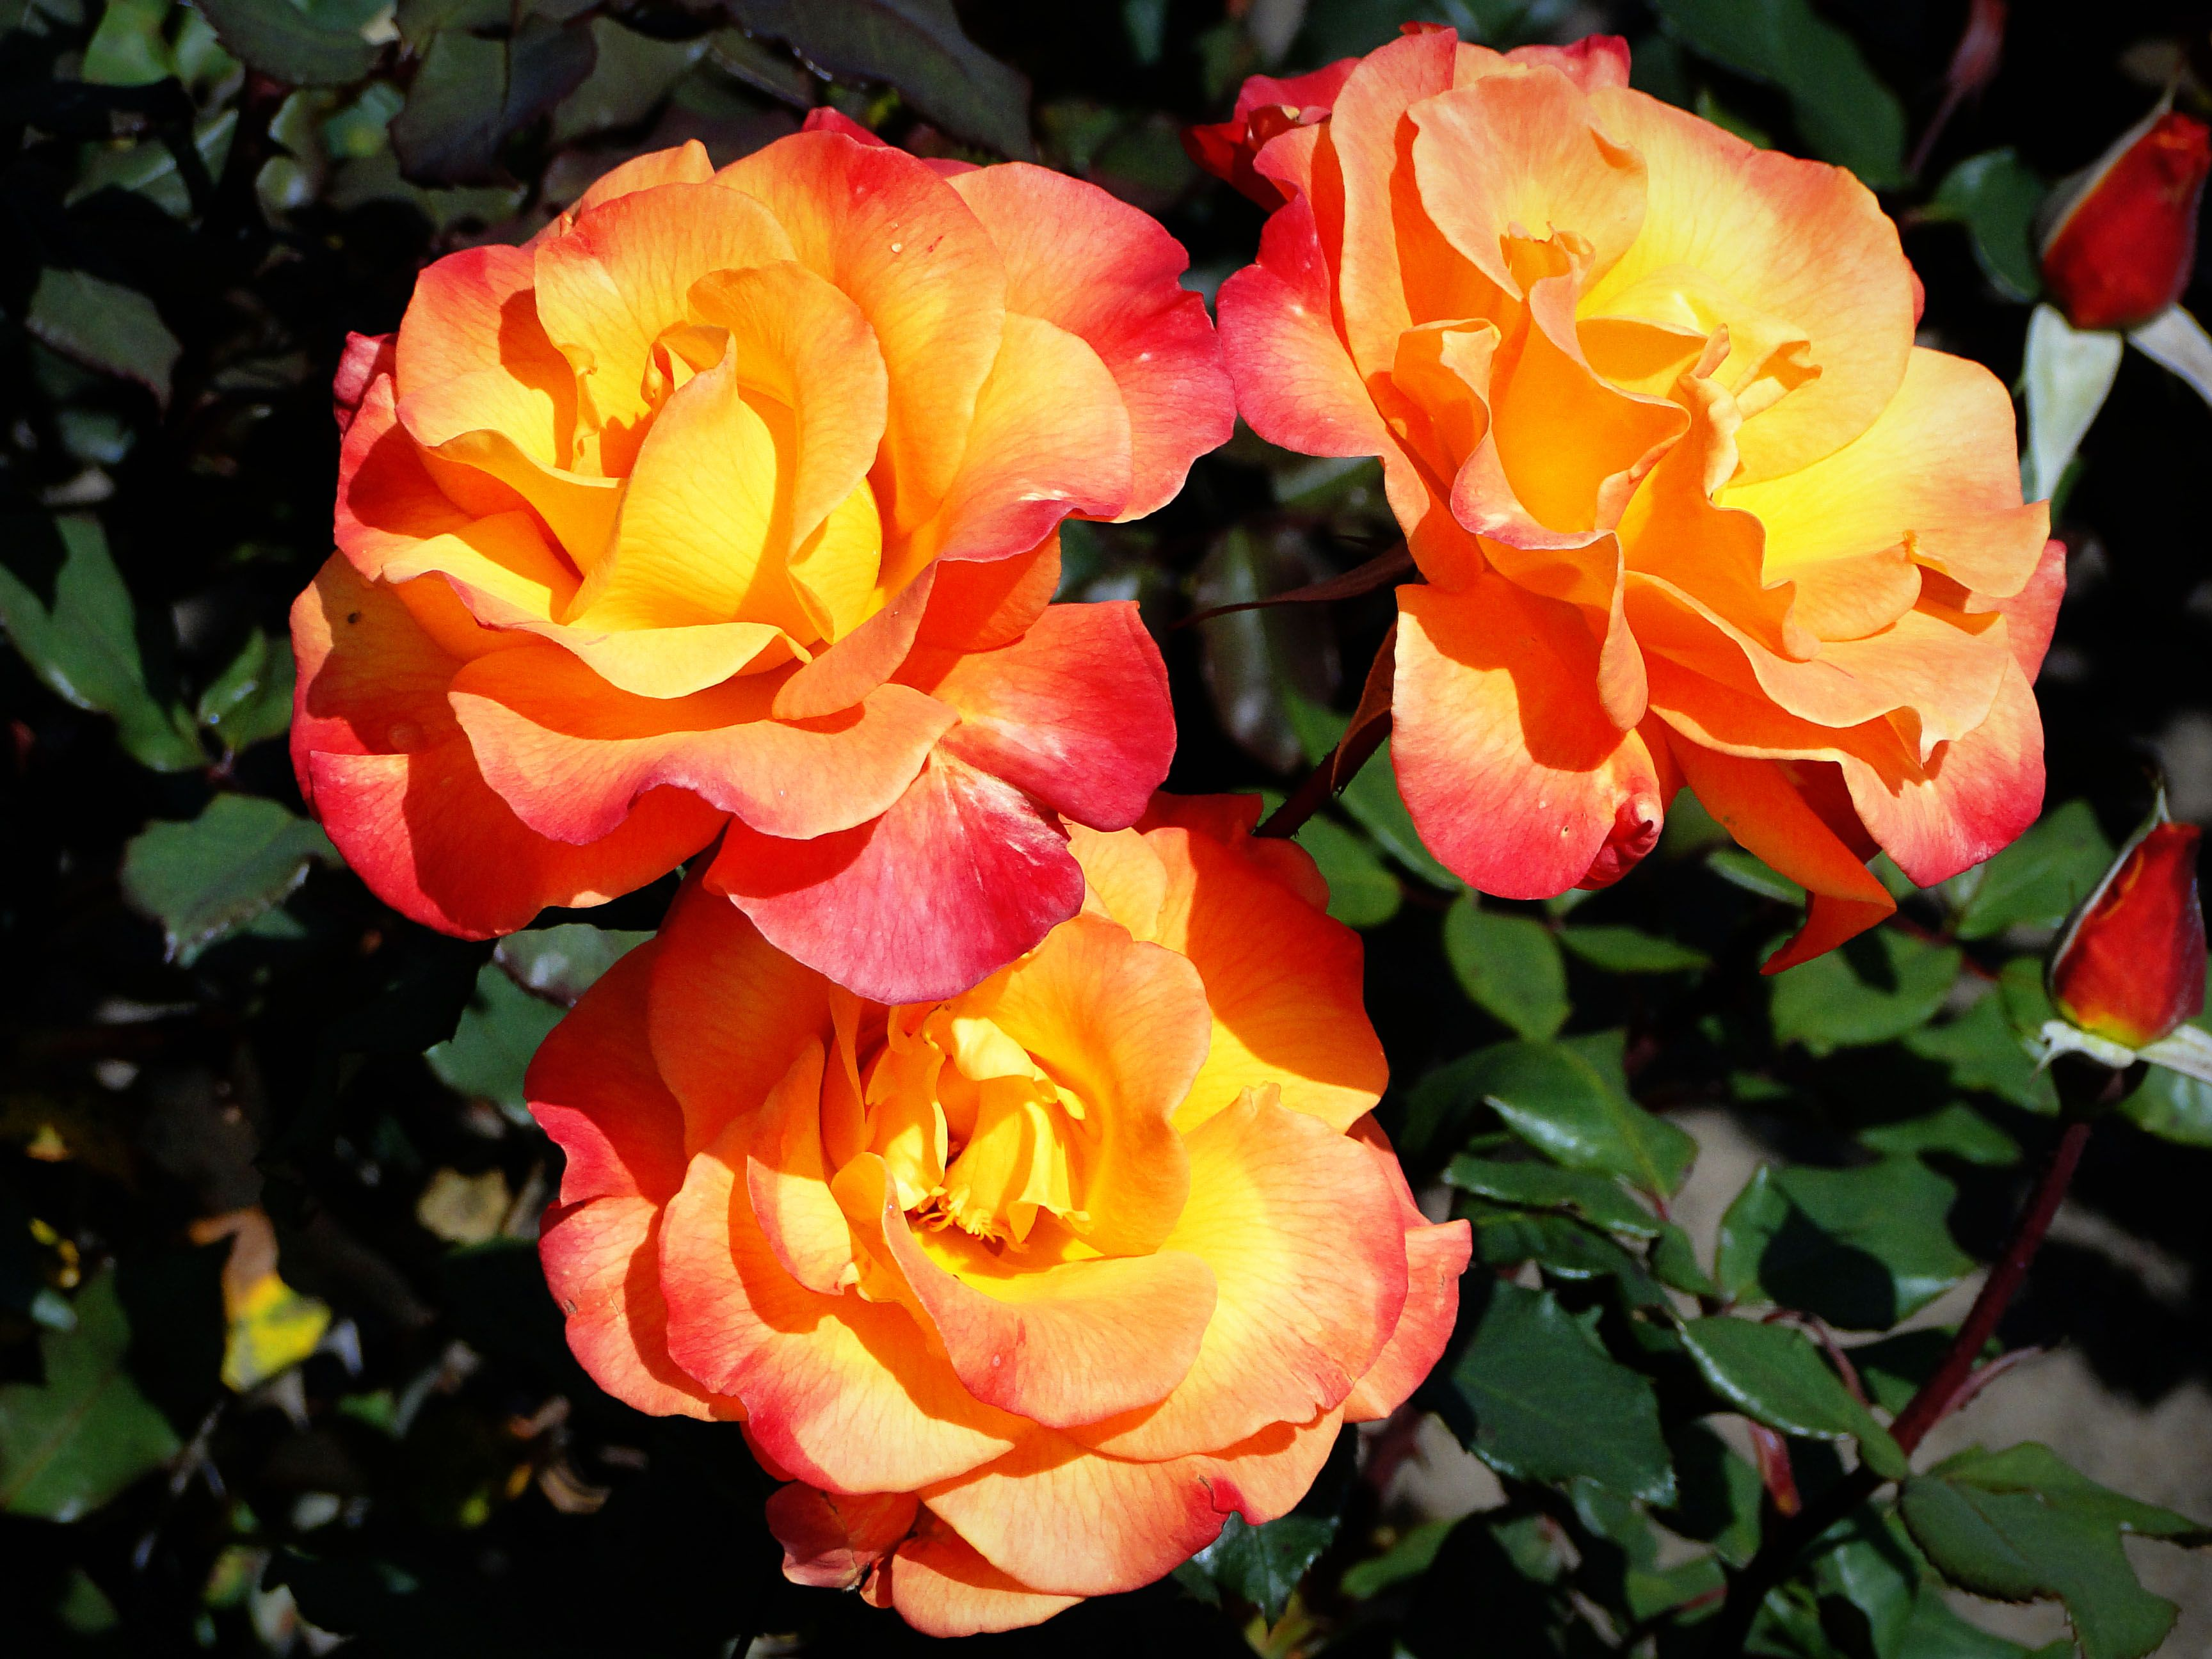 Rose garden ideas how to grow your best roses this year everything rose garden ideas how to grow your best roses this year everything you need izmirmasajfo